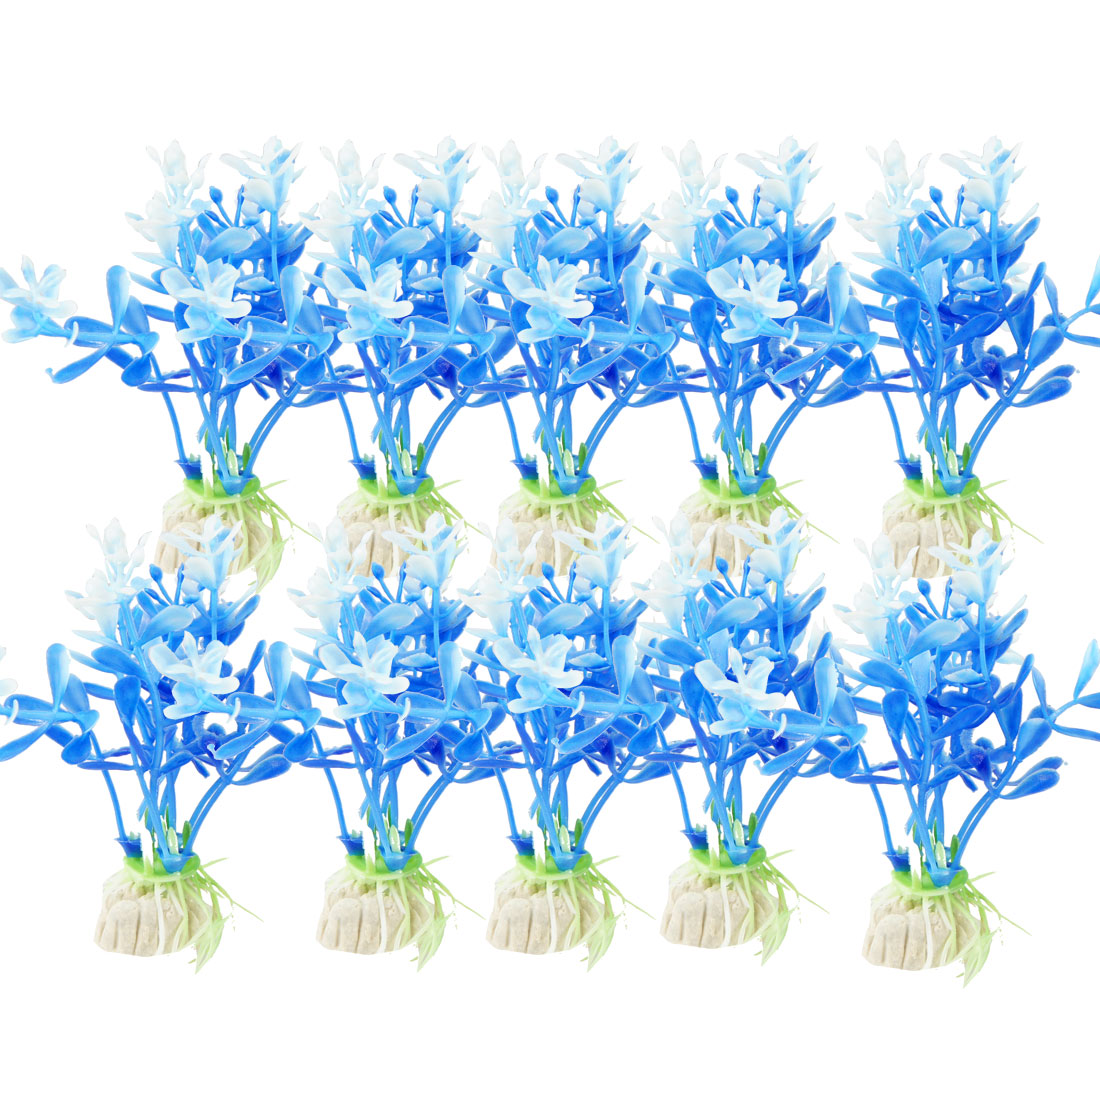 "10 Pcs 3.1"" High Blue White Fish Tank Simulation Plastic Aquatic Grass Decor"